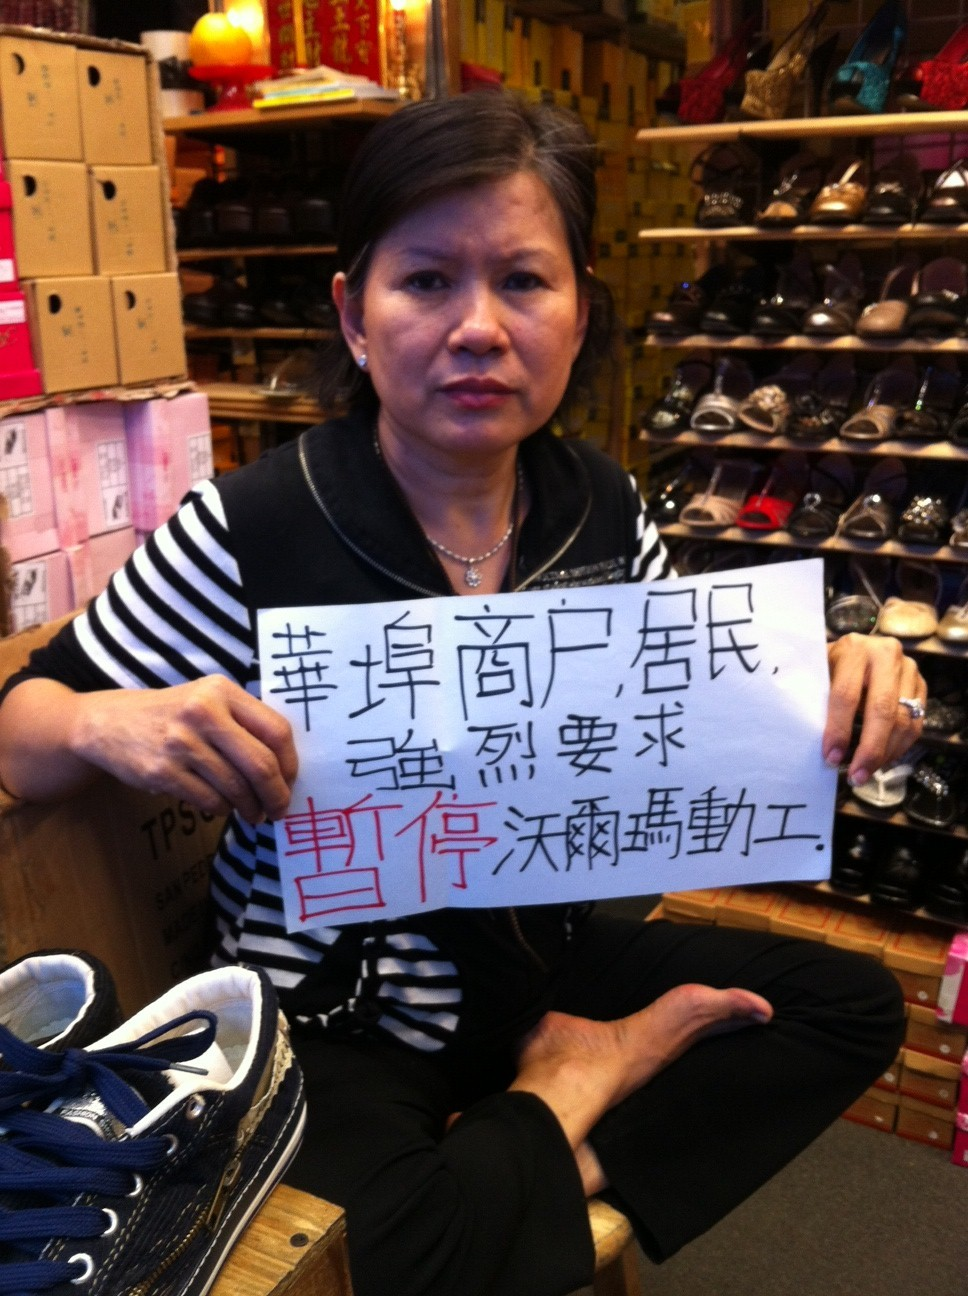 Chinatown small business owner opposes Wal-Mart. We all see the ramifications of Wal-Mart moving in.